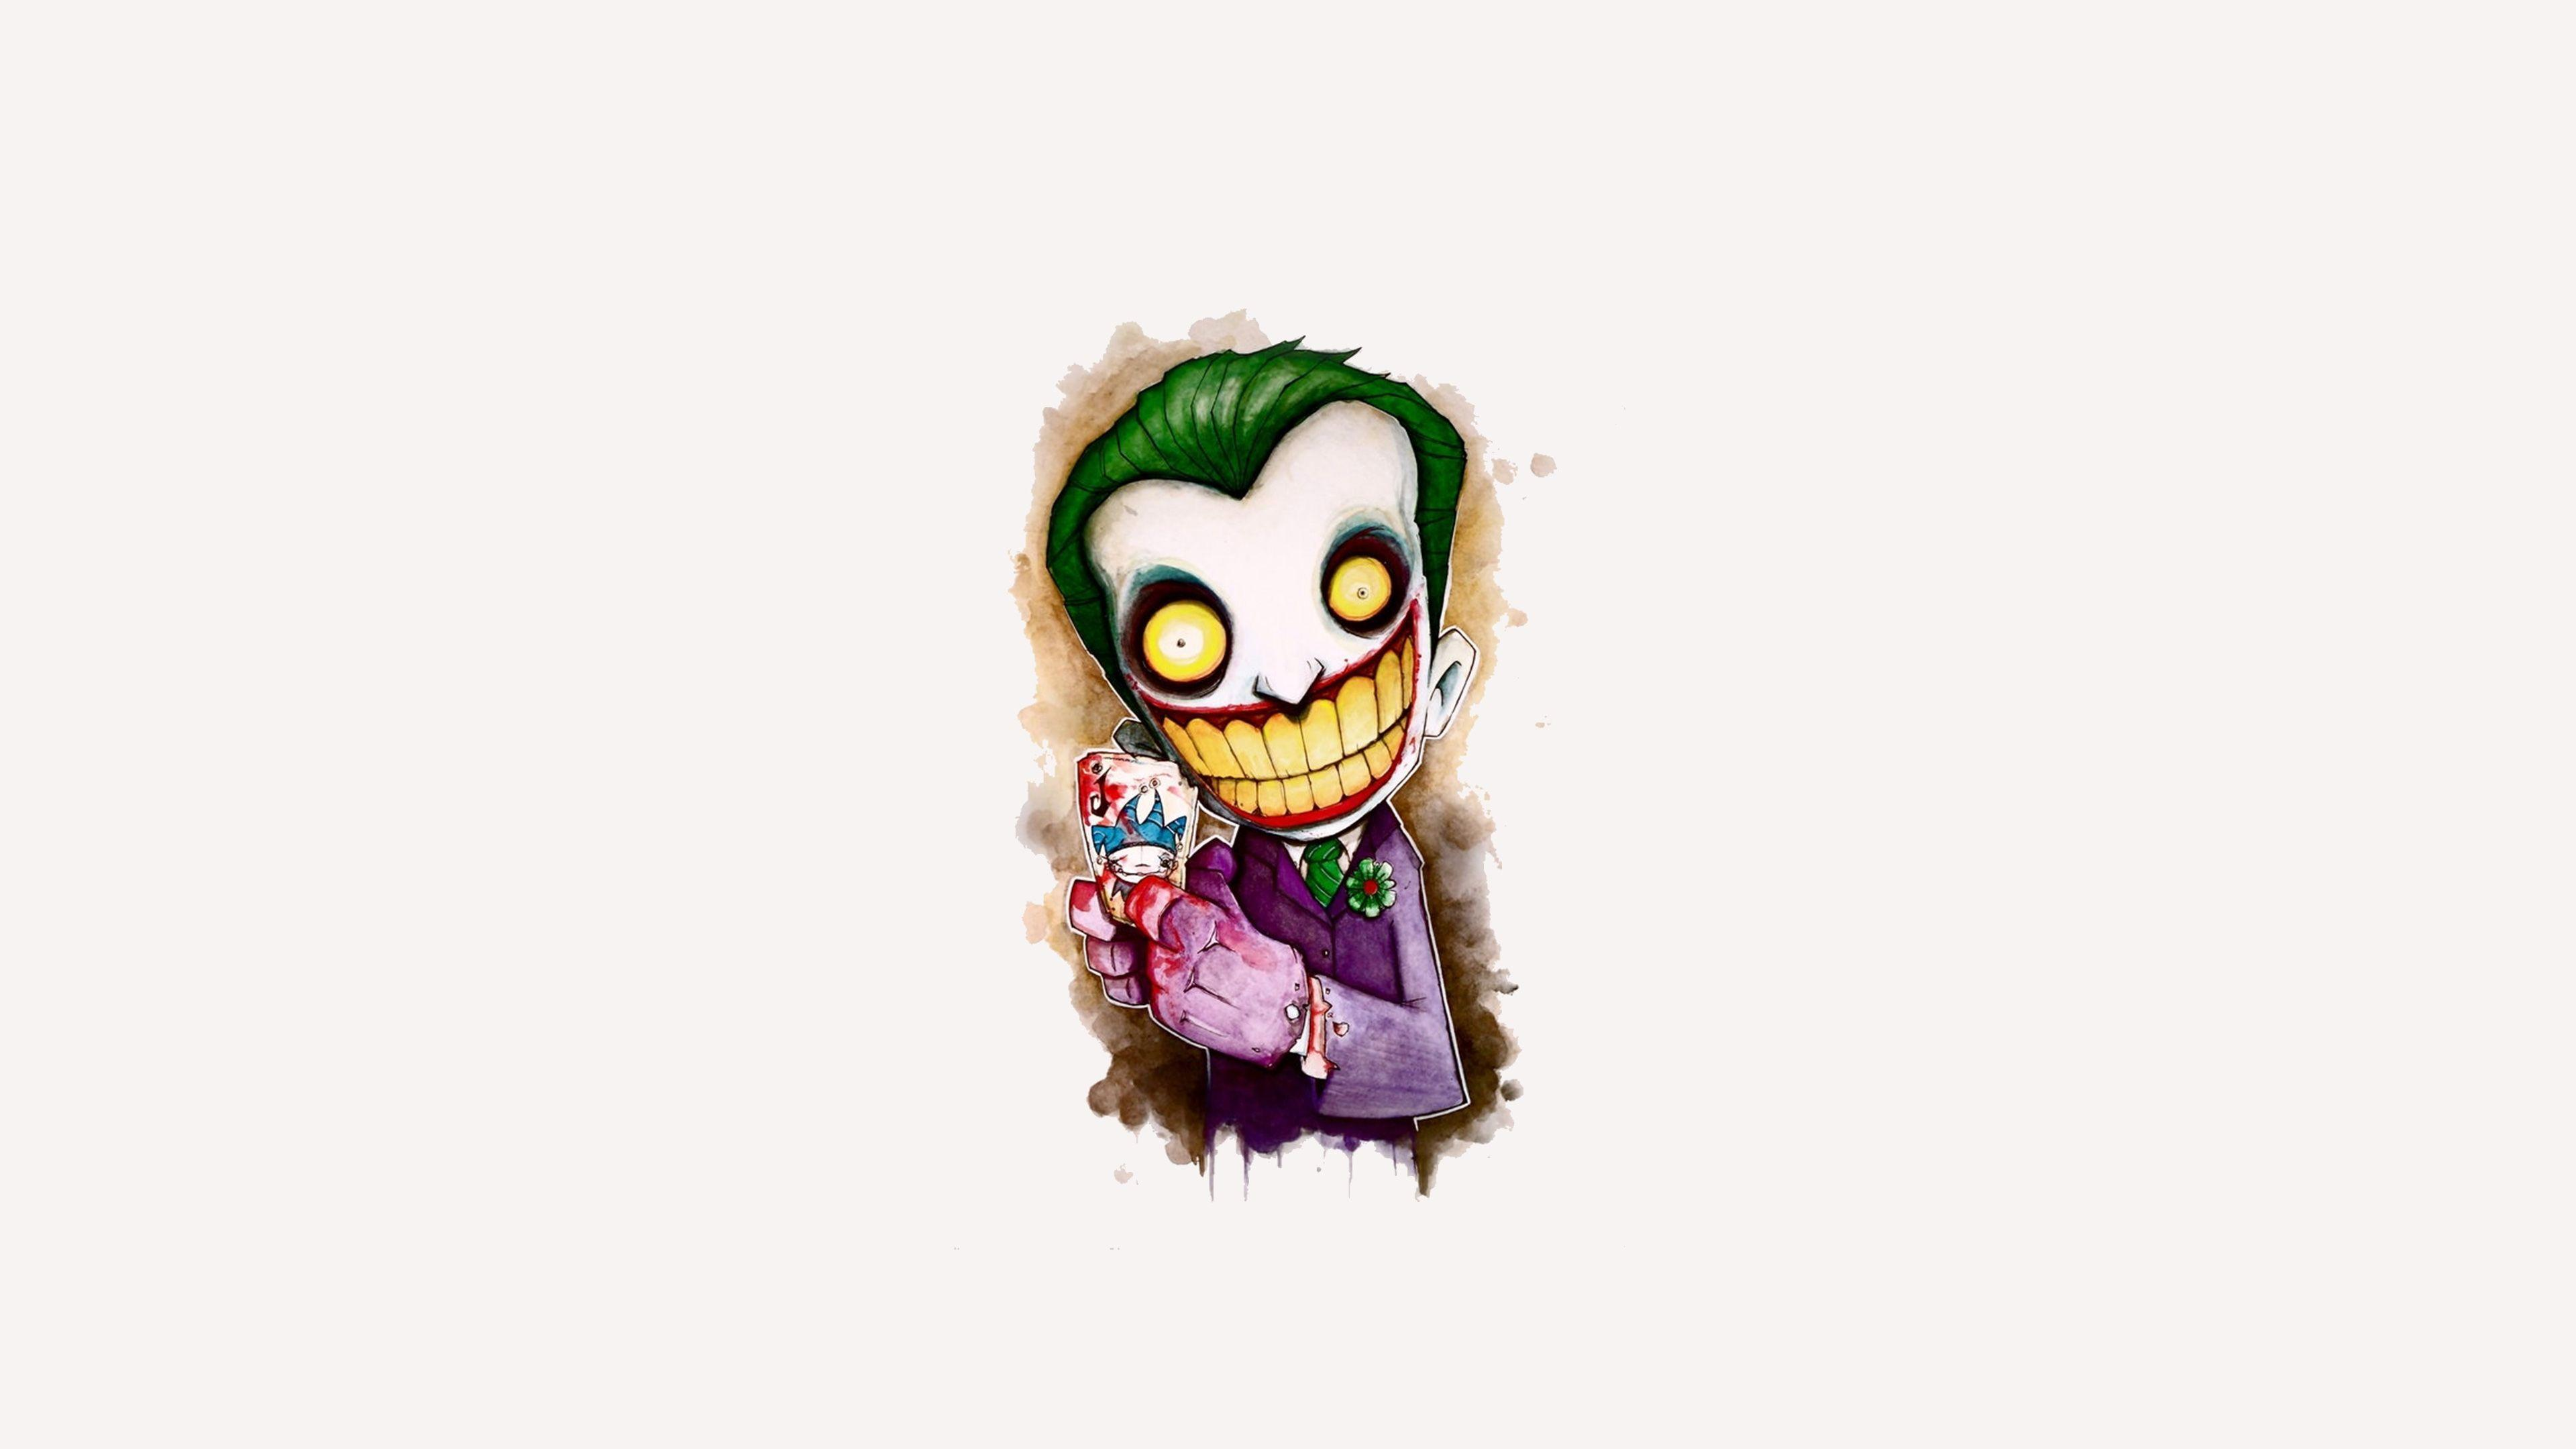 The Joker Cartoon